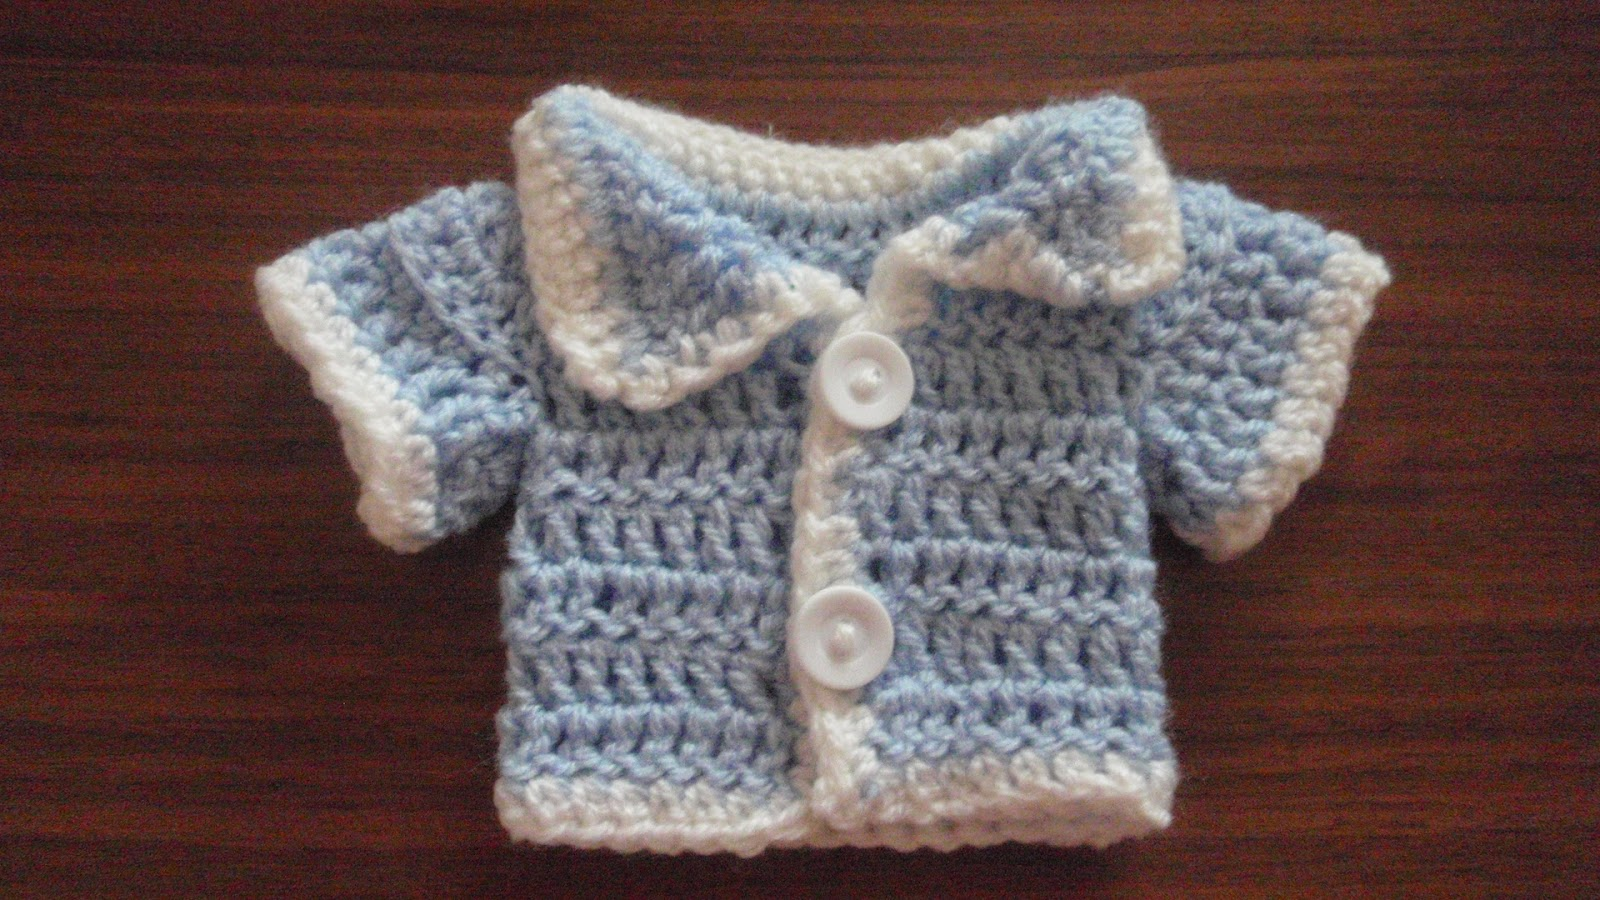 Premature Baby Crochet Cardigan Pattern : Ive Made Friday Week 11 ~ Crochet Addict CFS